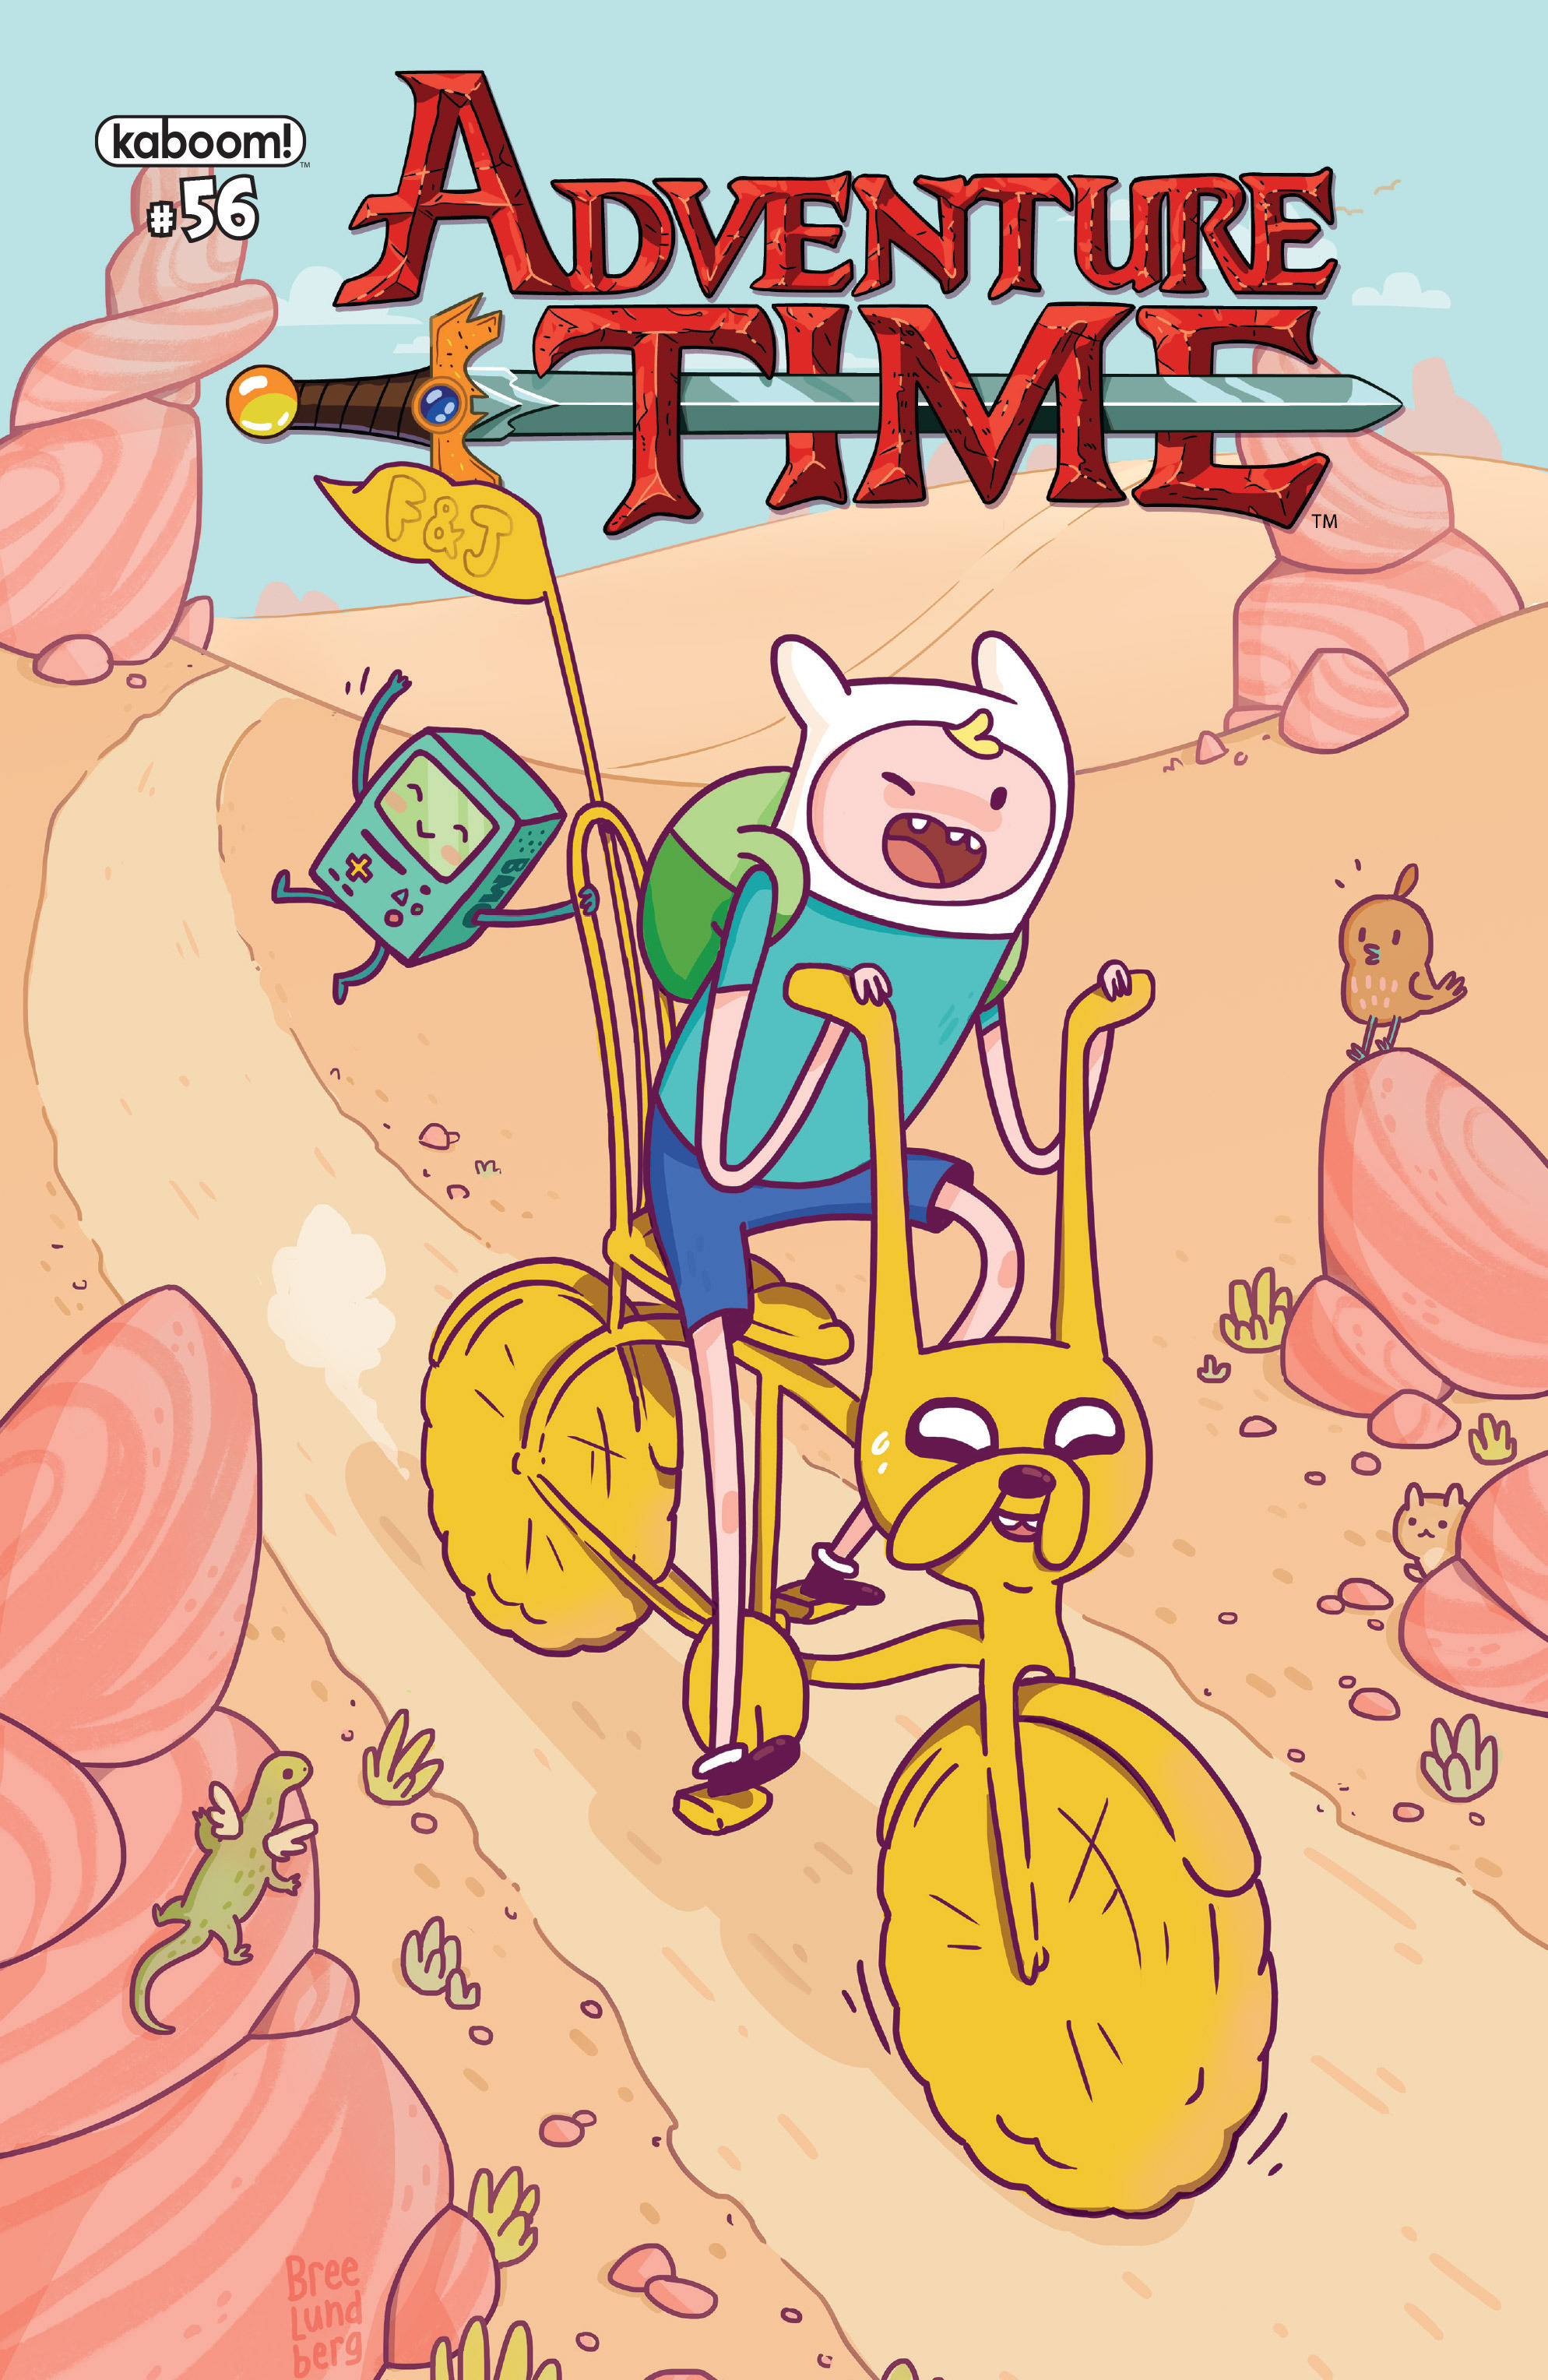 Read online Adventure Time comic -  Issue #56 - 1